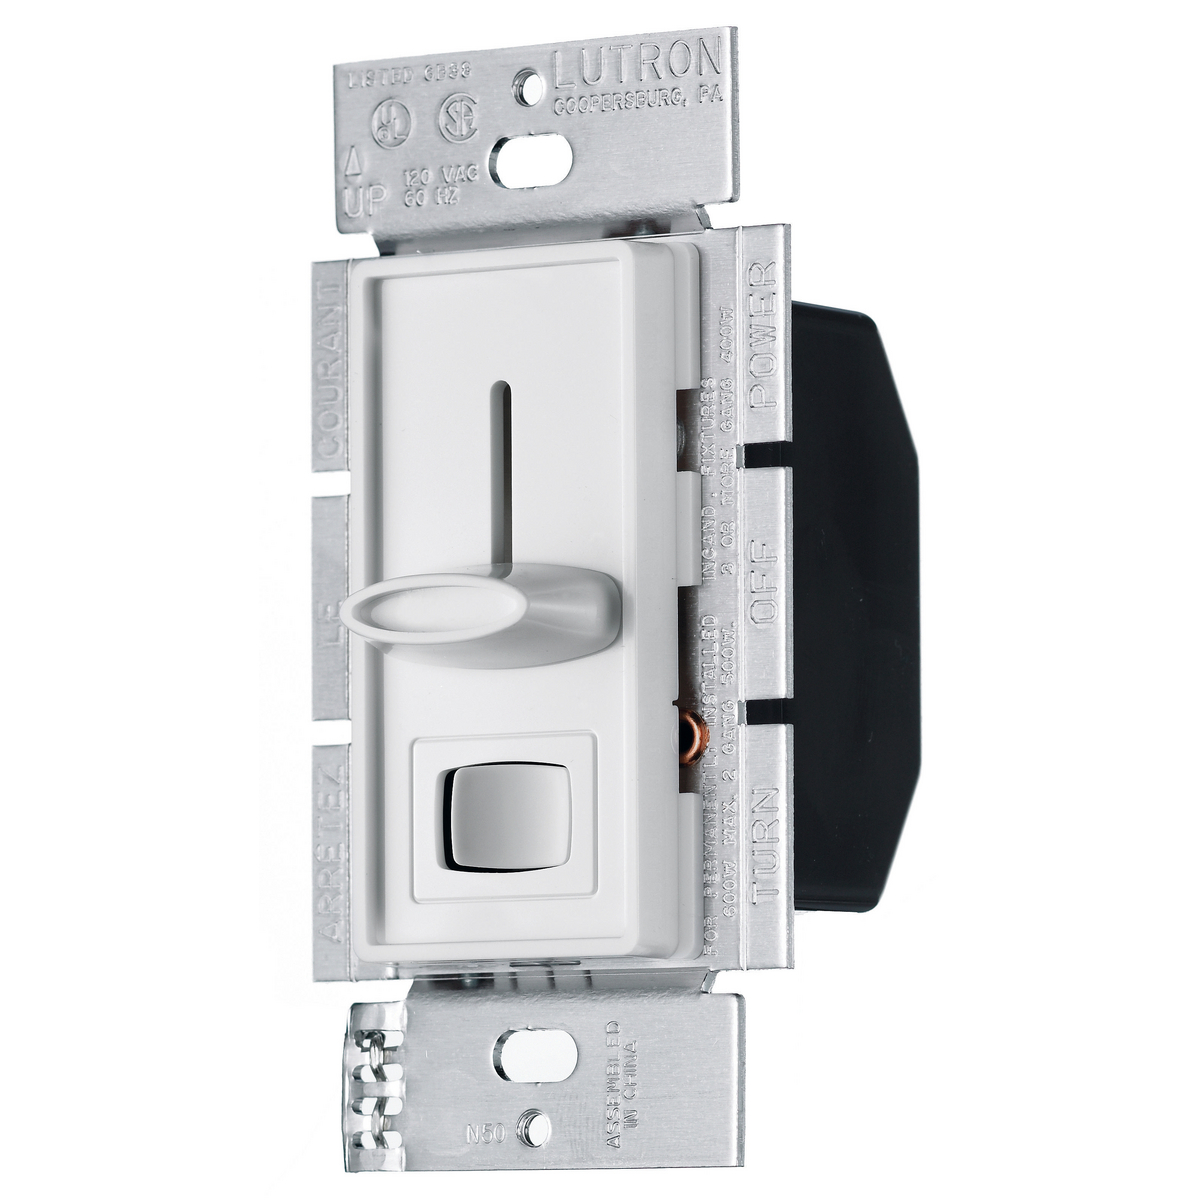 HUBRS600PW DIMMER, SP, SLIDER P-SET, 600W 120V, WH ,RS600PW, HUBBELL